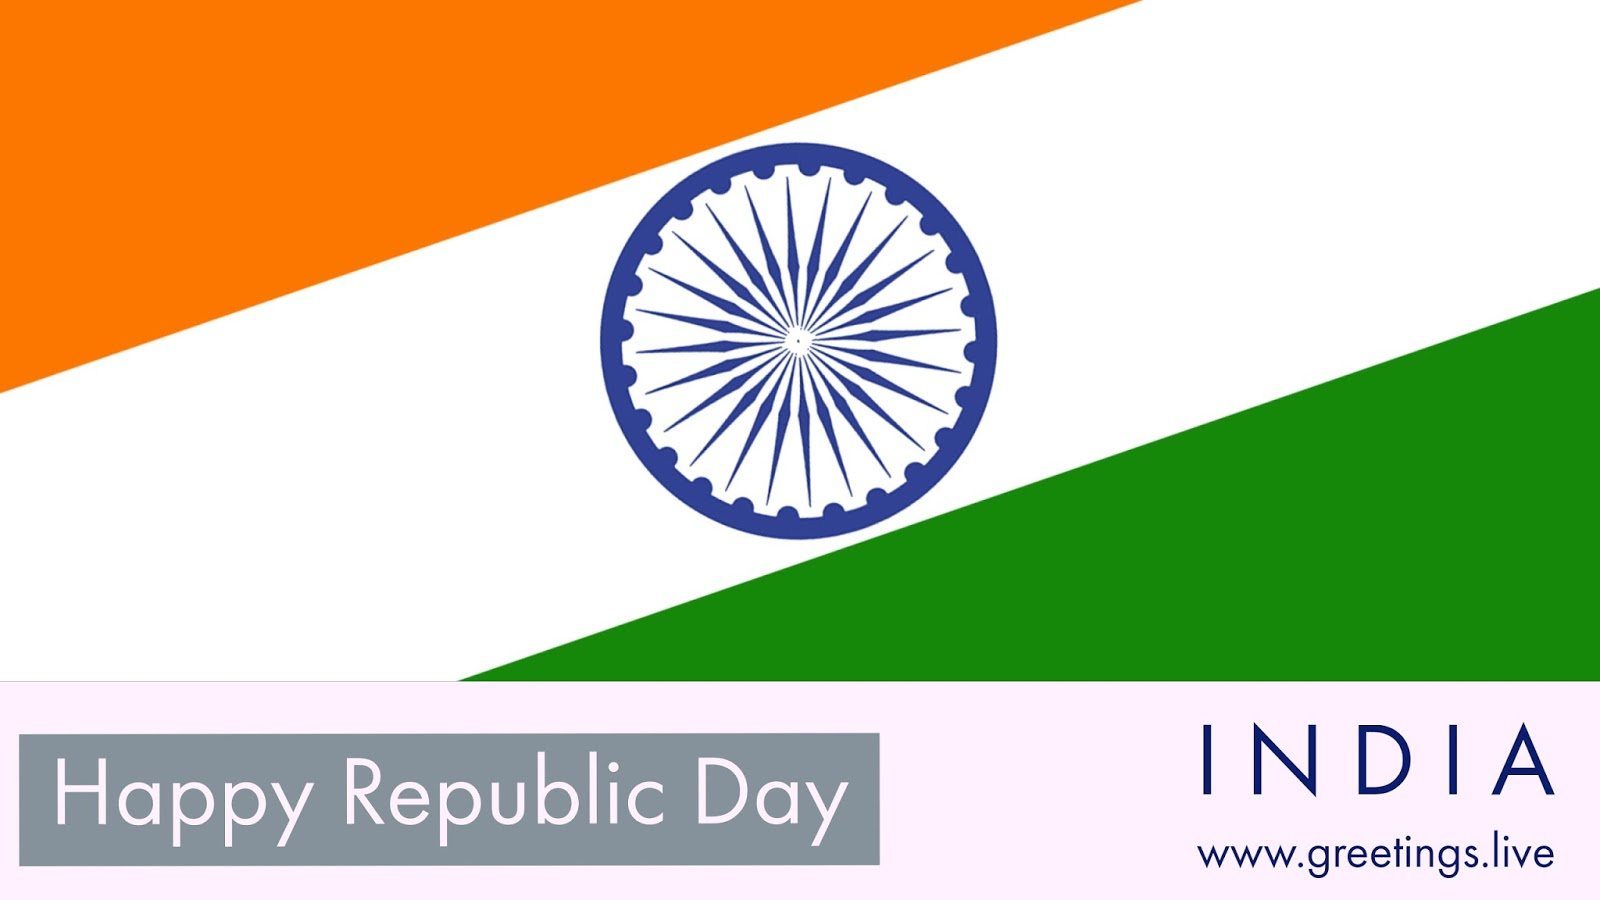 Greetingsve free hd images to express wishes all occasions 26 jan indian republic day festival greetings celebration m4hsunfo